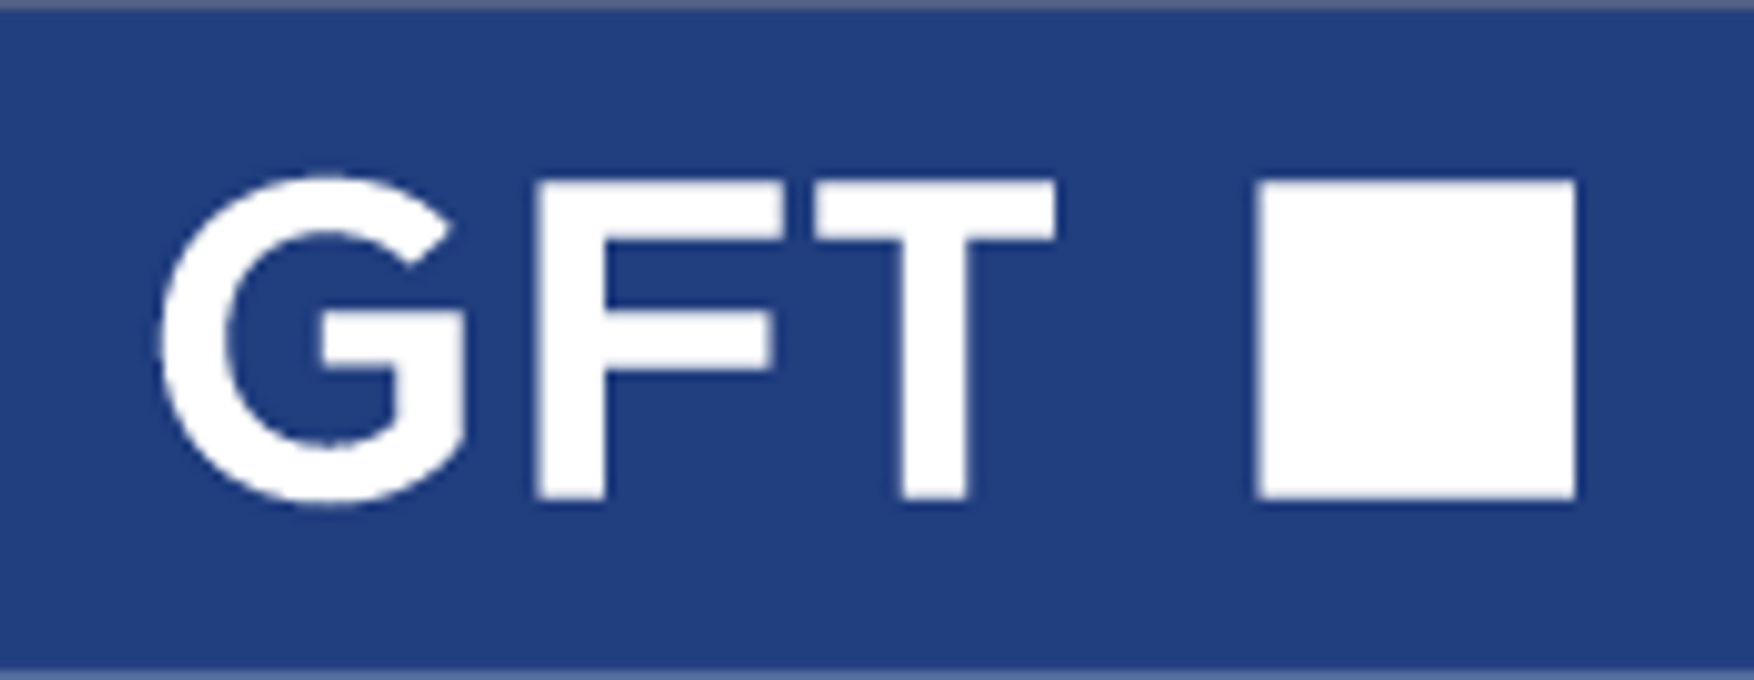 GFT partners with Enterprise Data Management Council to help firms adopt data management best practices